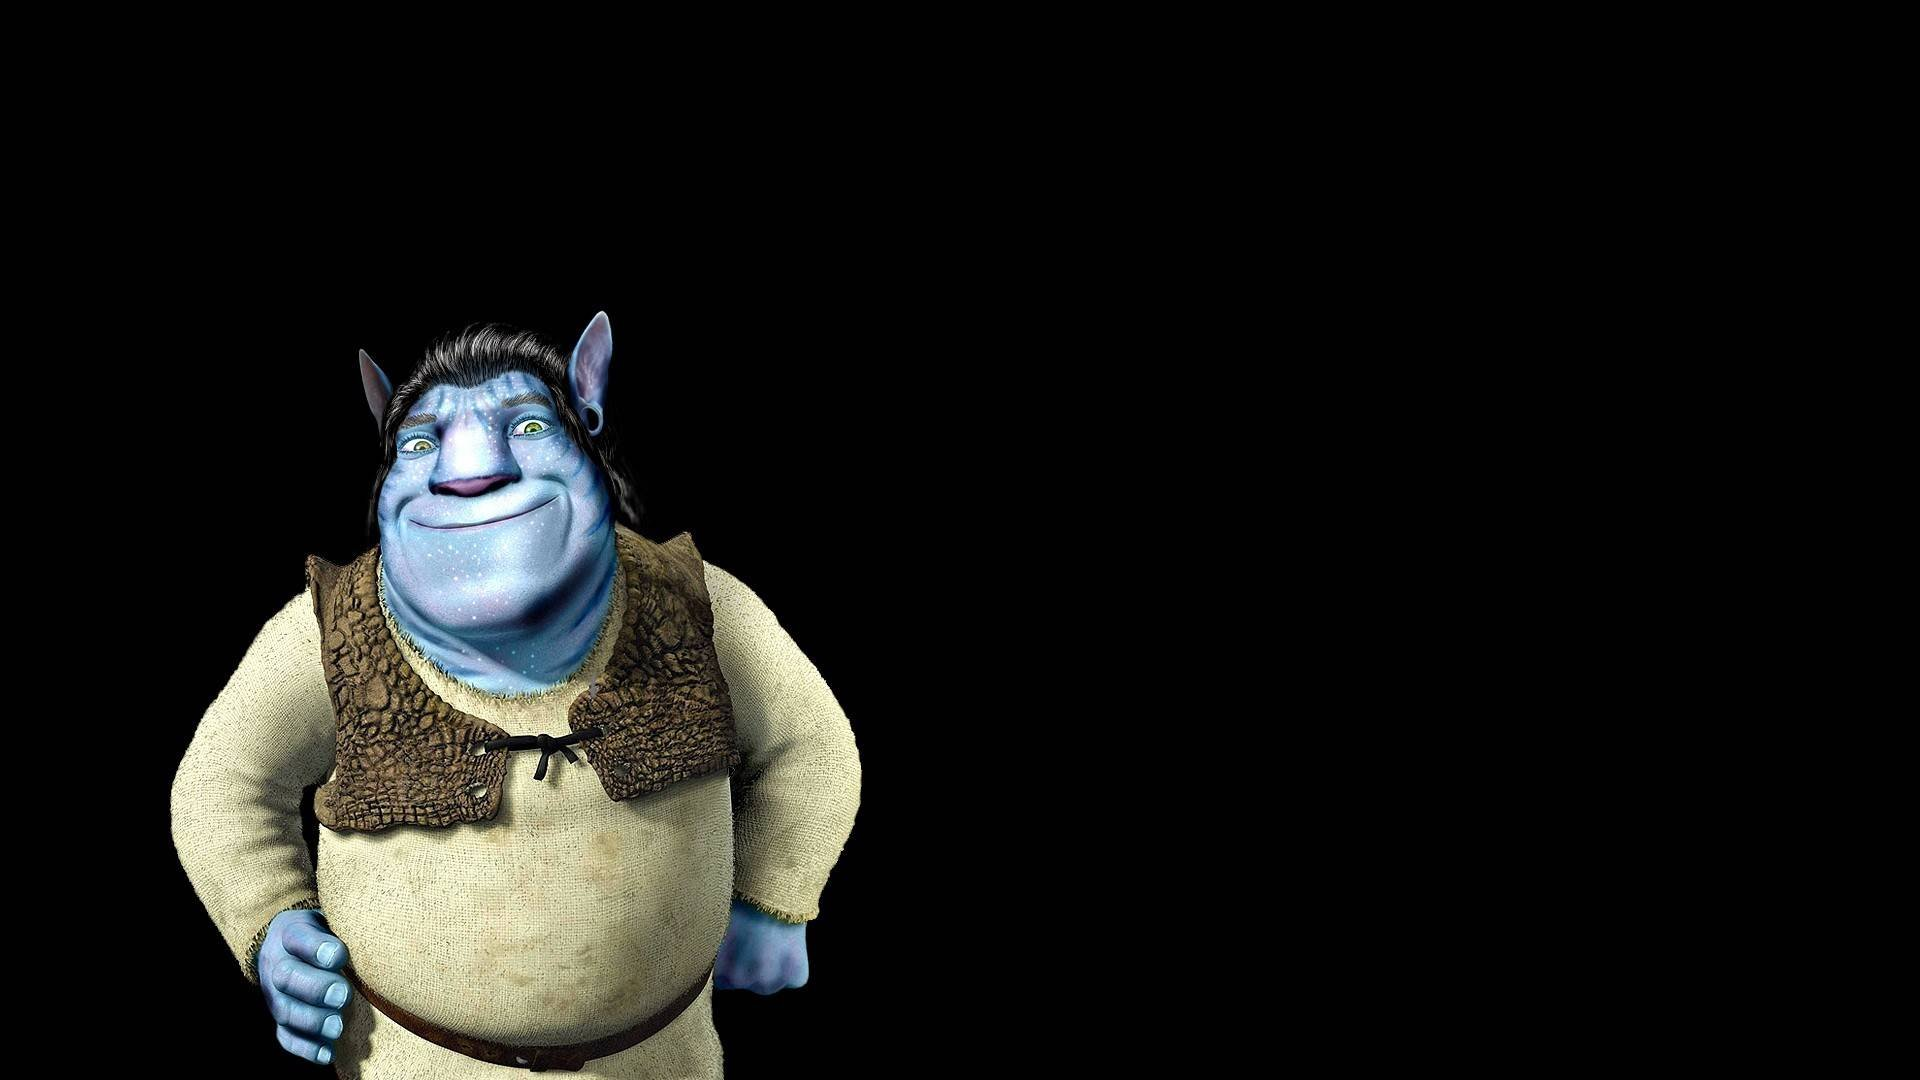 Shrek Hd Wallpapers And Backgrounds 1920x1080